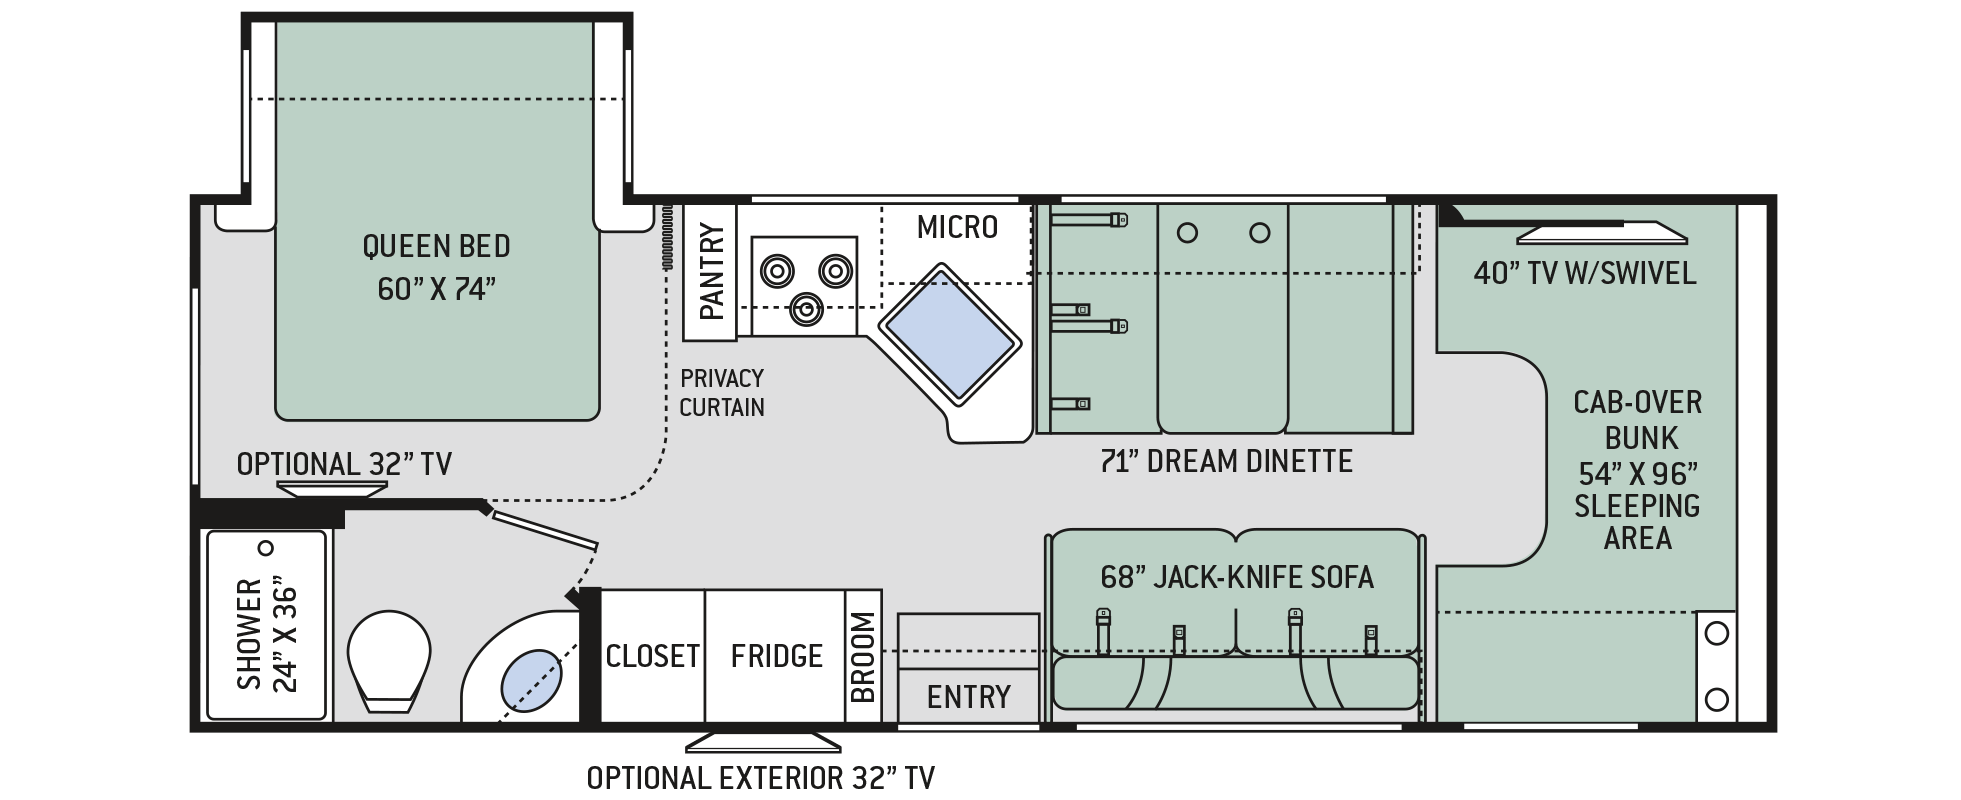 Four Winds Class C Motorhomes Floor Plan 26b Thor